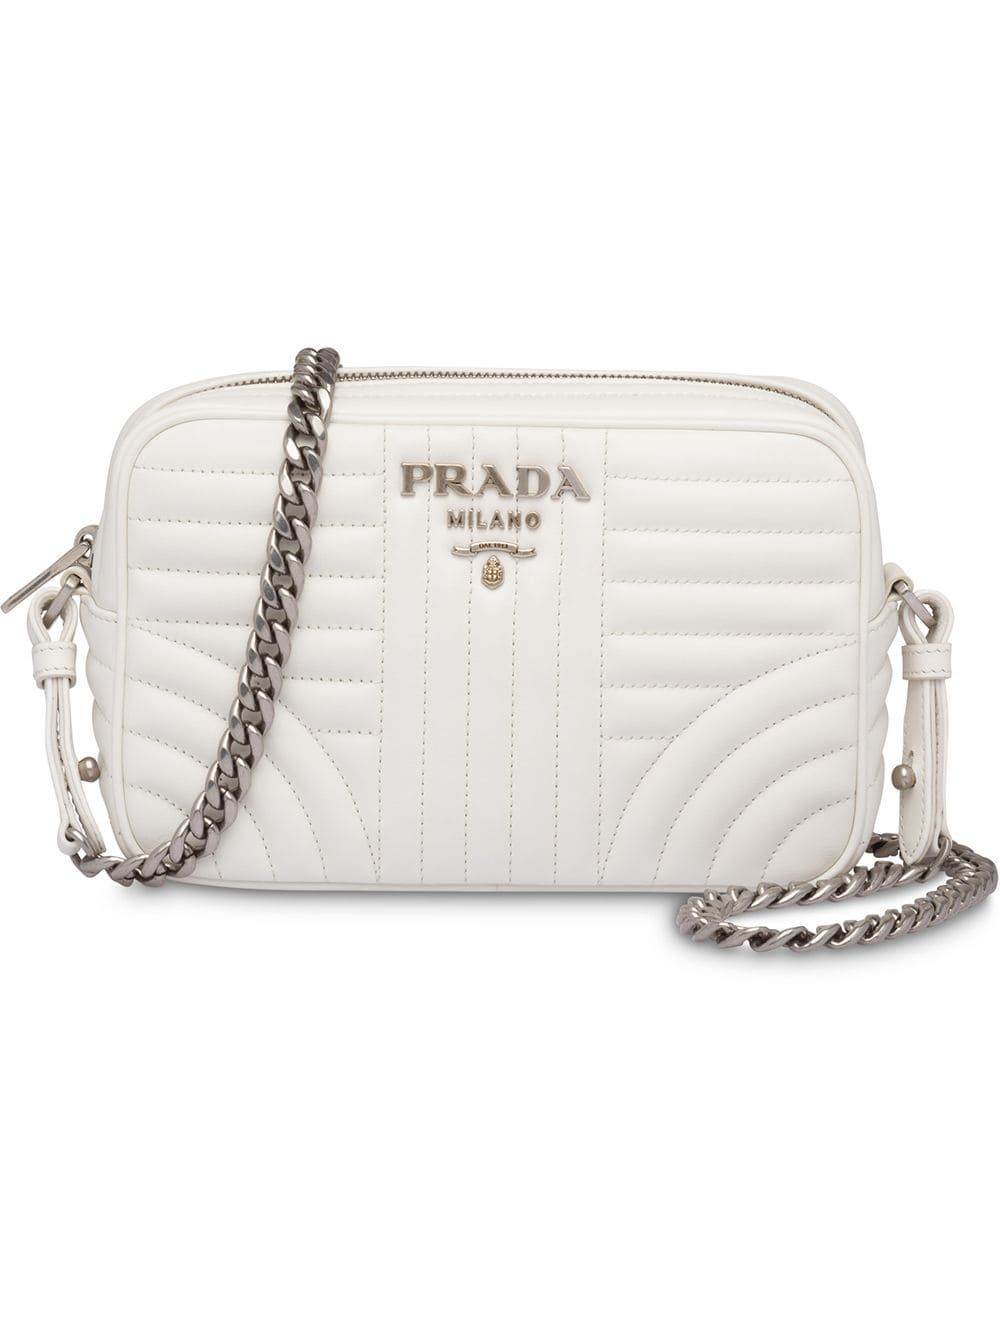 307e4ddb4eb30d PRADA PRADA DIAGRAMME LEATHER CROSS-BODY BAG - WHITE. #prada #bags  #shoulder bags #leather